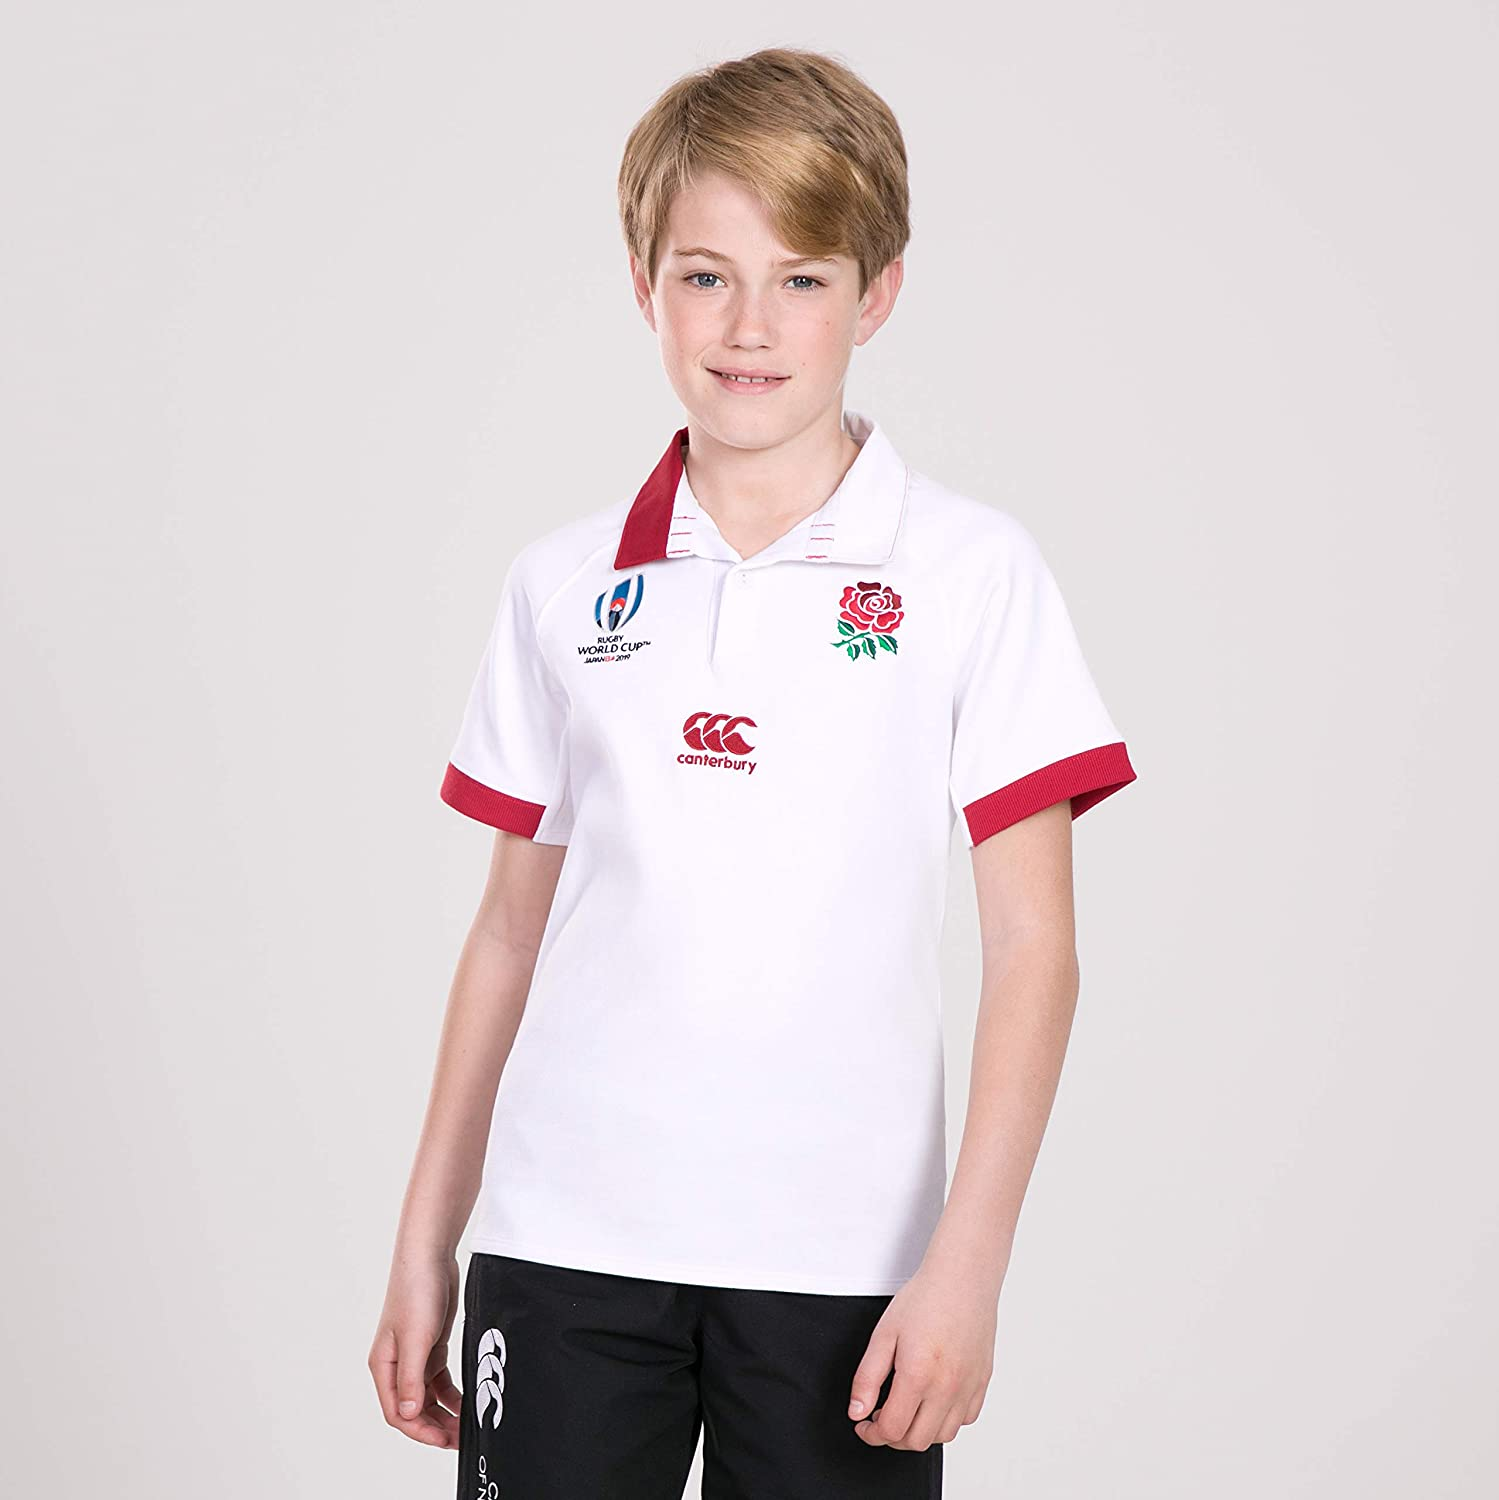 Canterbury of New Zealand Kids England World Cup 2019 Vapodri Home Rugby Jersey, Bright White, Size 12: Amazon.es: Ropa y accesorios